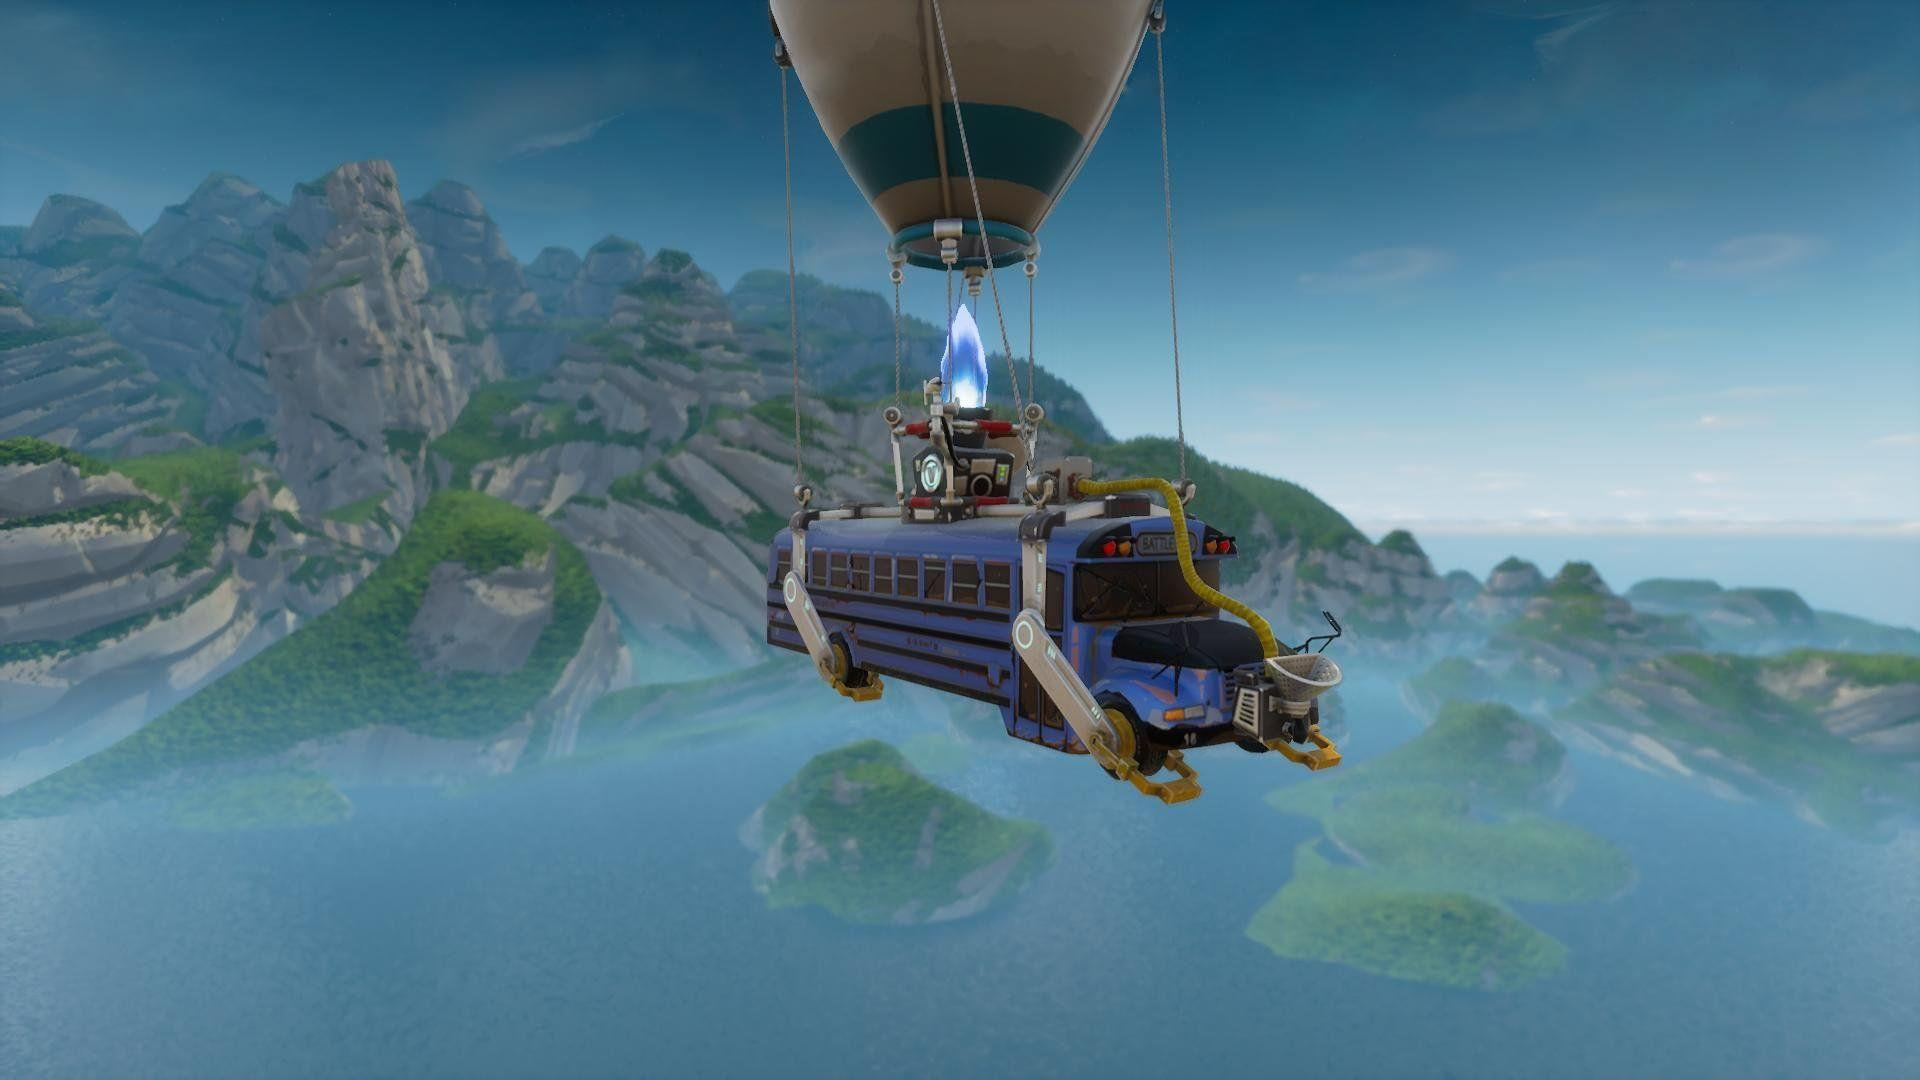 Flying Bus Fortnite Battle Royale Wallpapers for Phone and HD Desktop